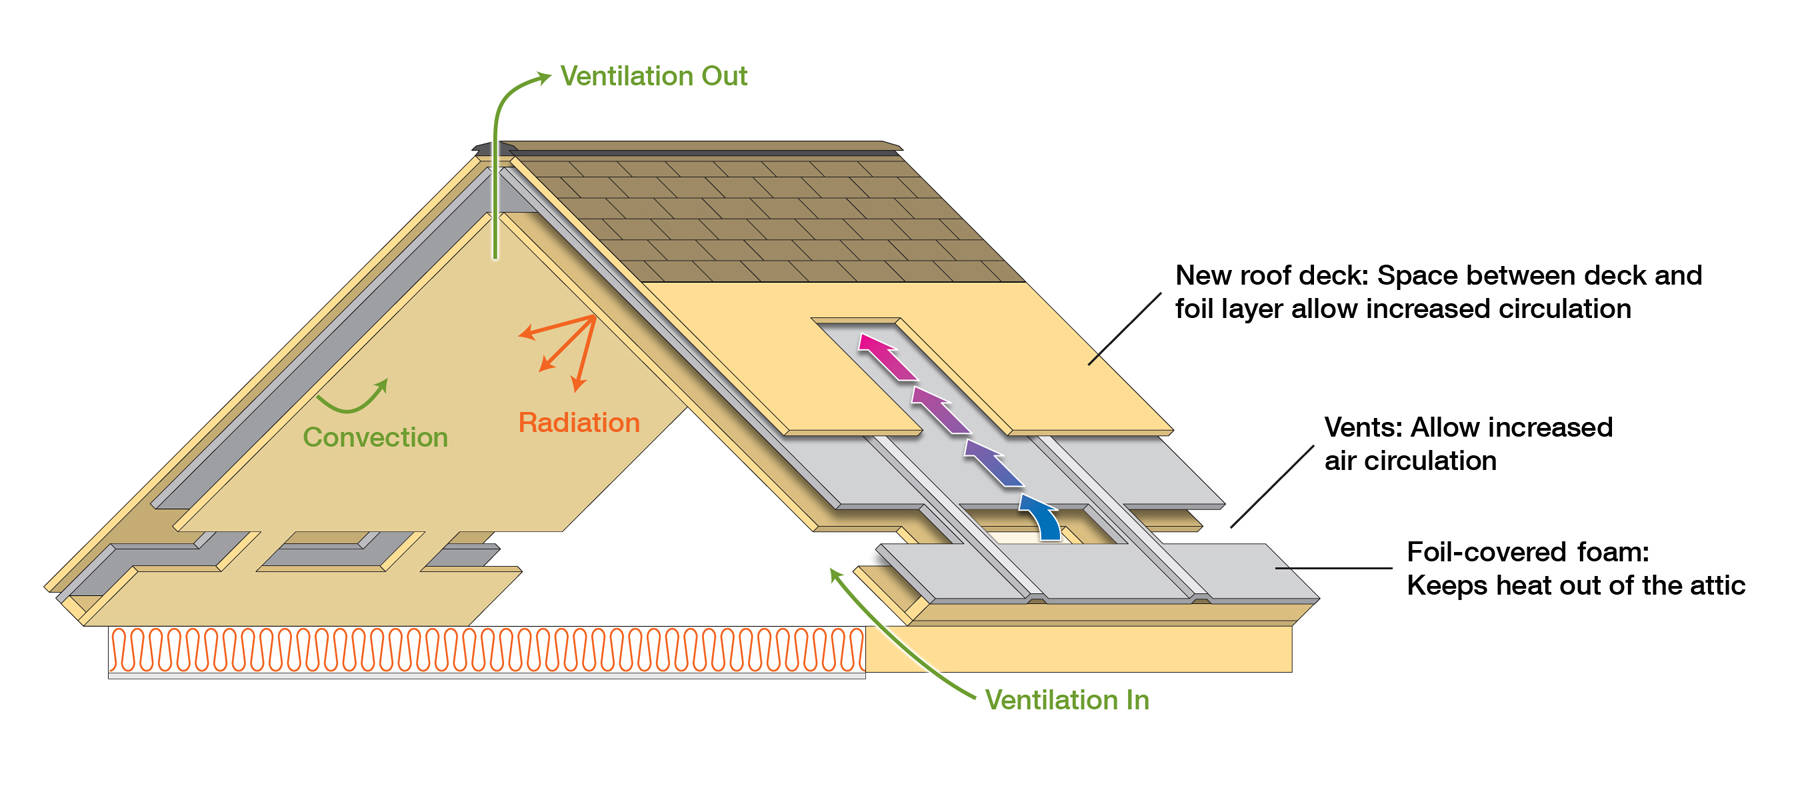 Something practical – new roof design saves energy | Watts Up With That?